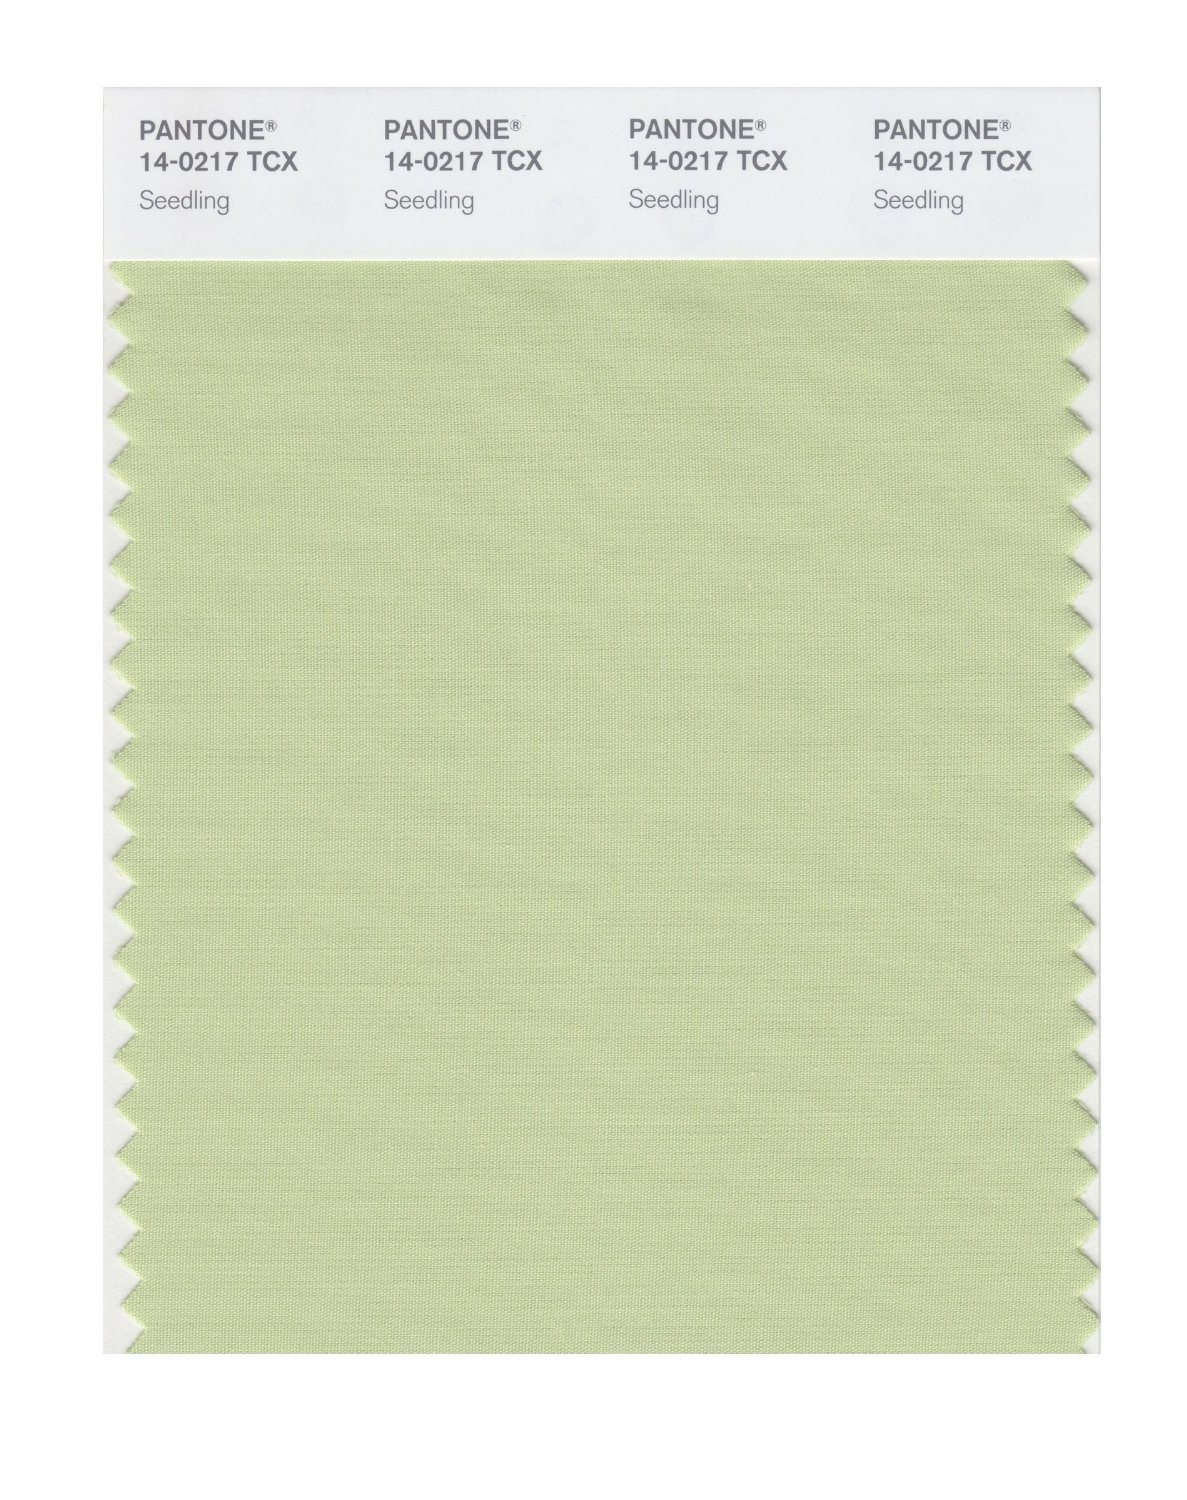 Pantone Smart Swatch 14-0217 Seedling